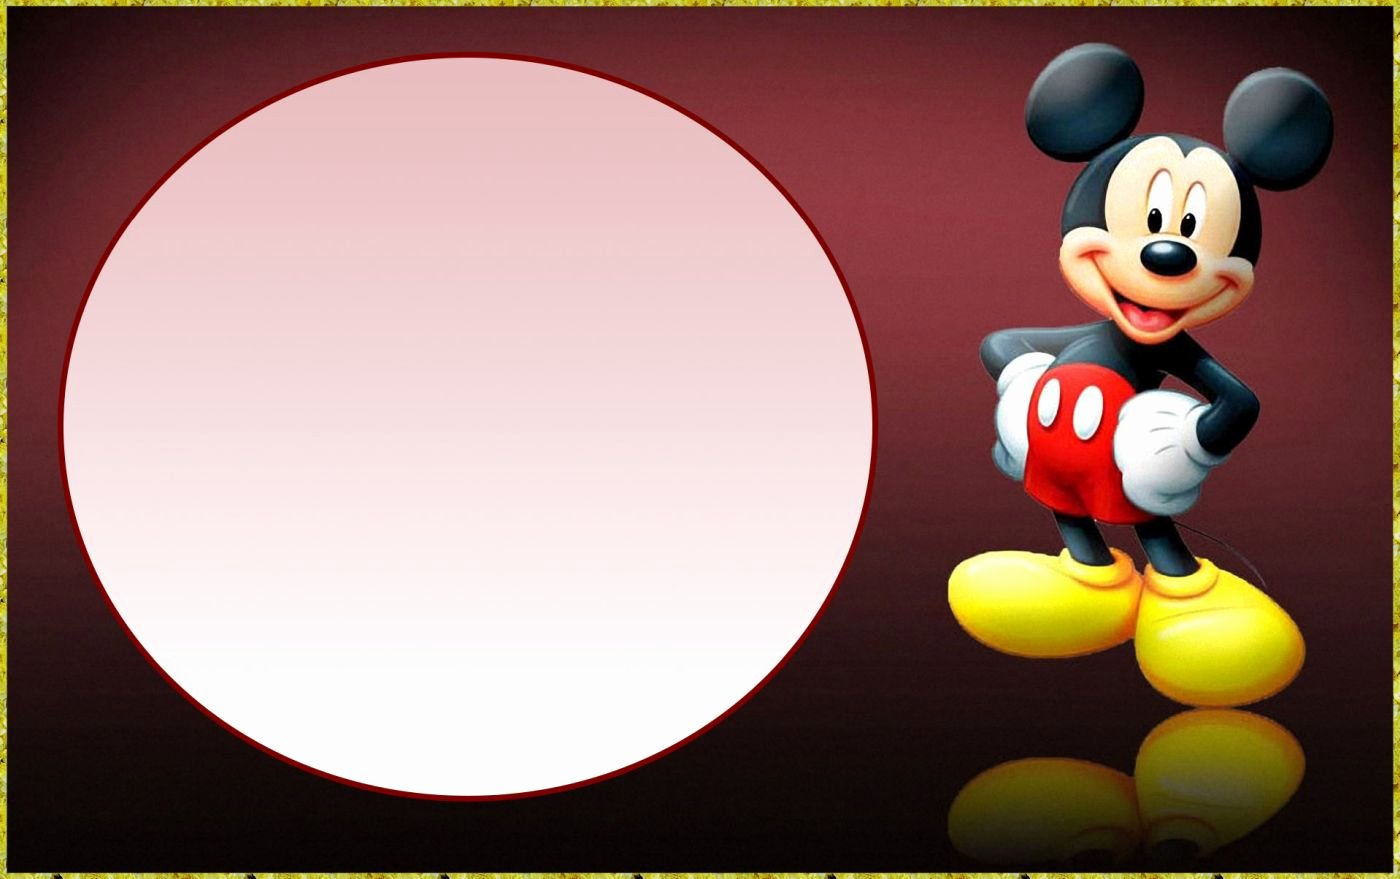 Free Mickey Mouse Template Elegant Mickey Mouse Template for Invitation Hashtag Bg